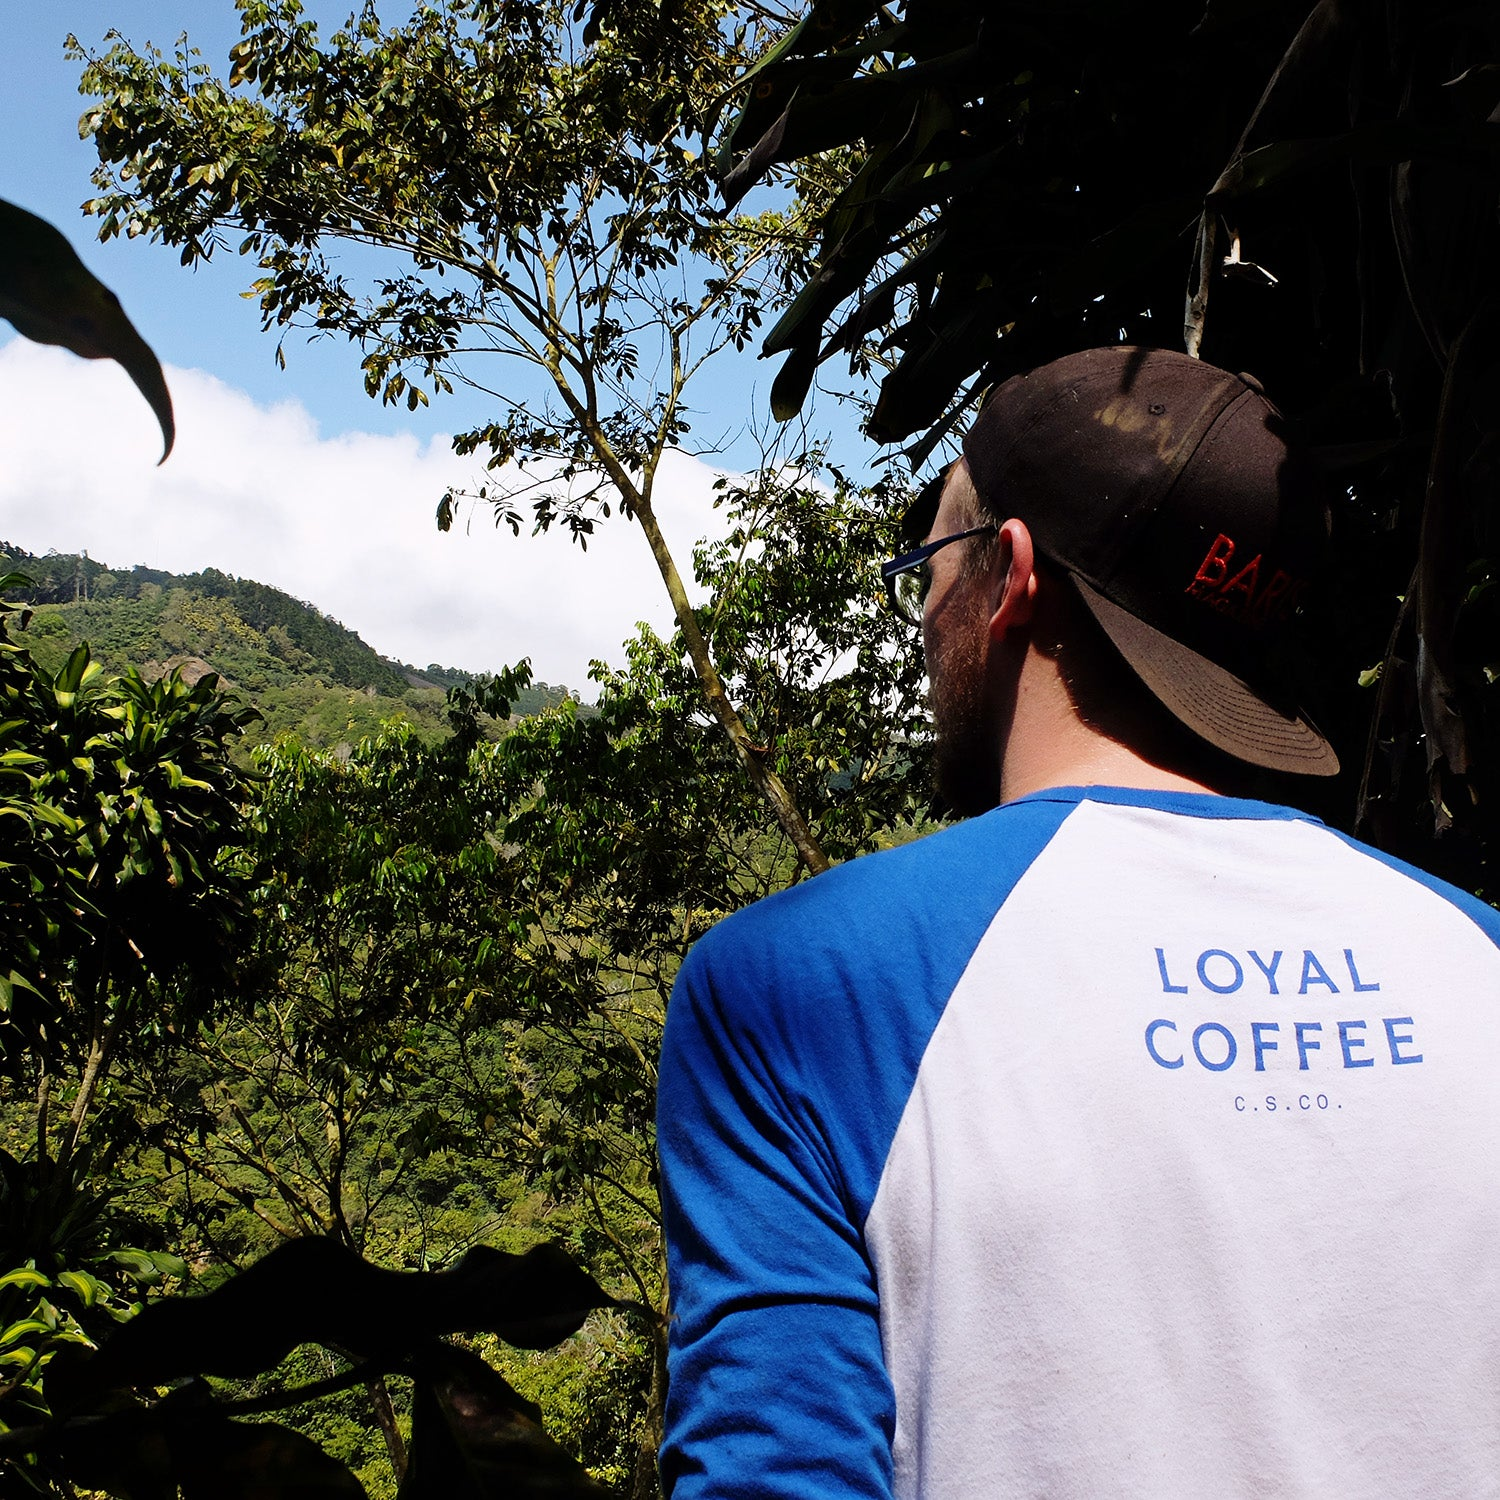 Loyal Coffee in Costa Rica